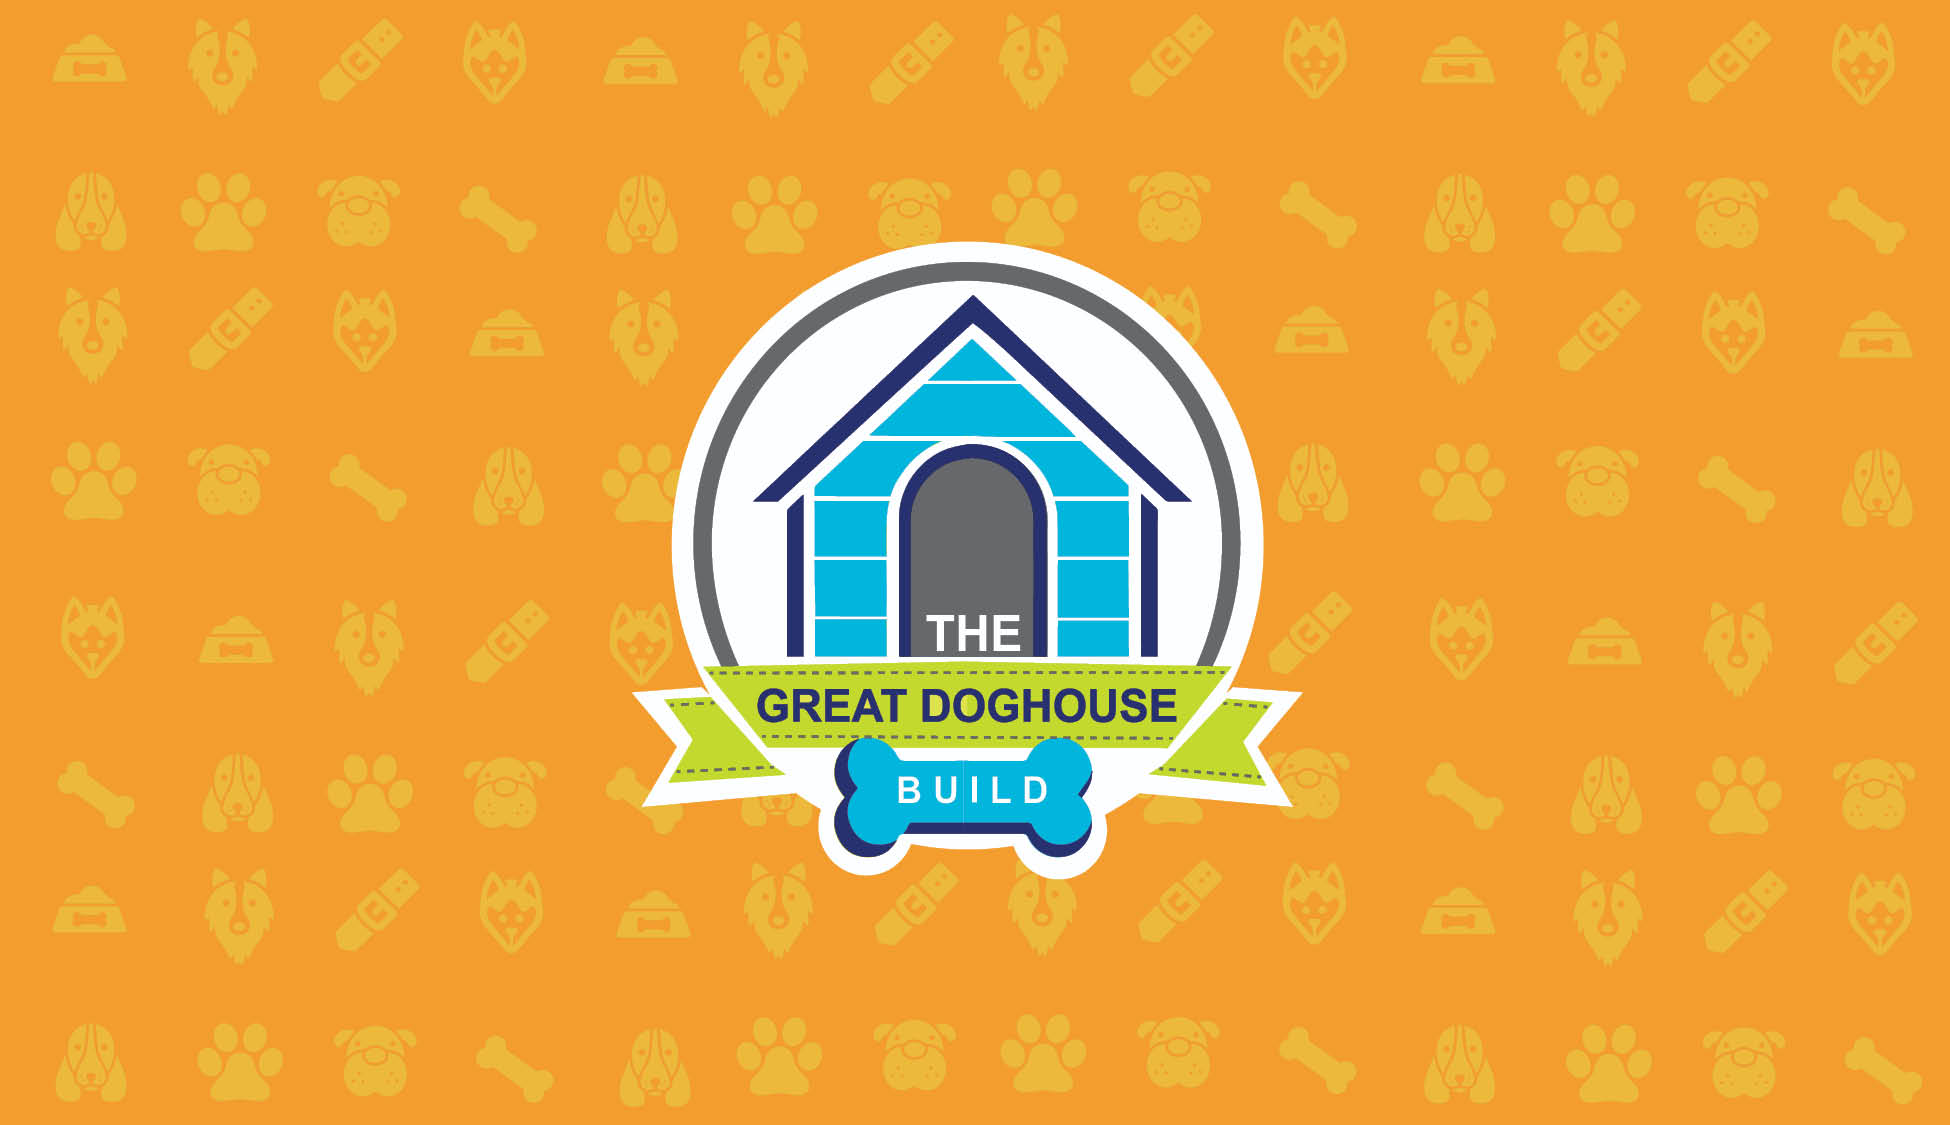 Great Doghouse Build Website Cover photo for event page